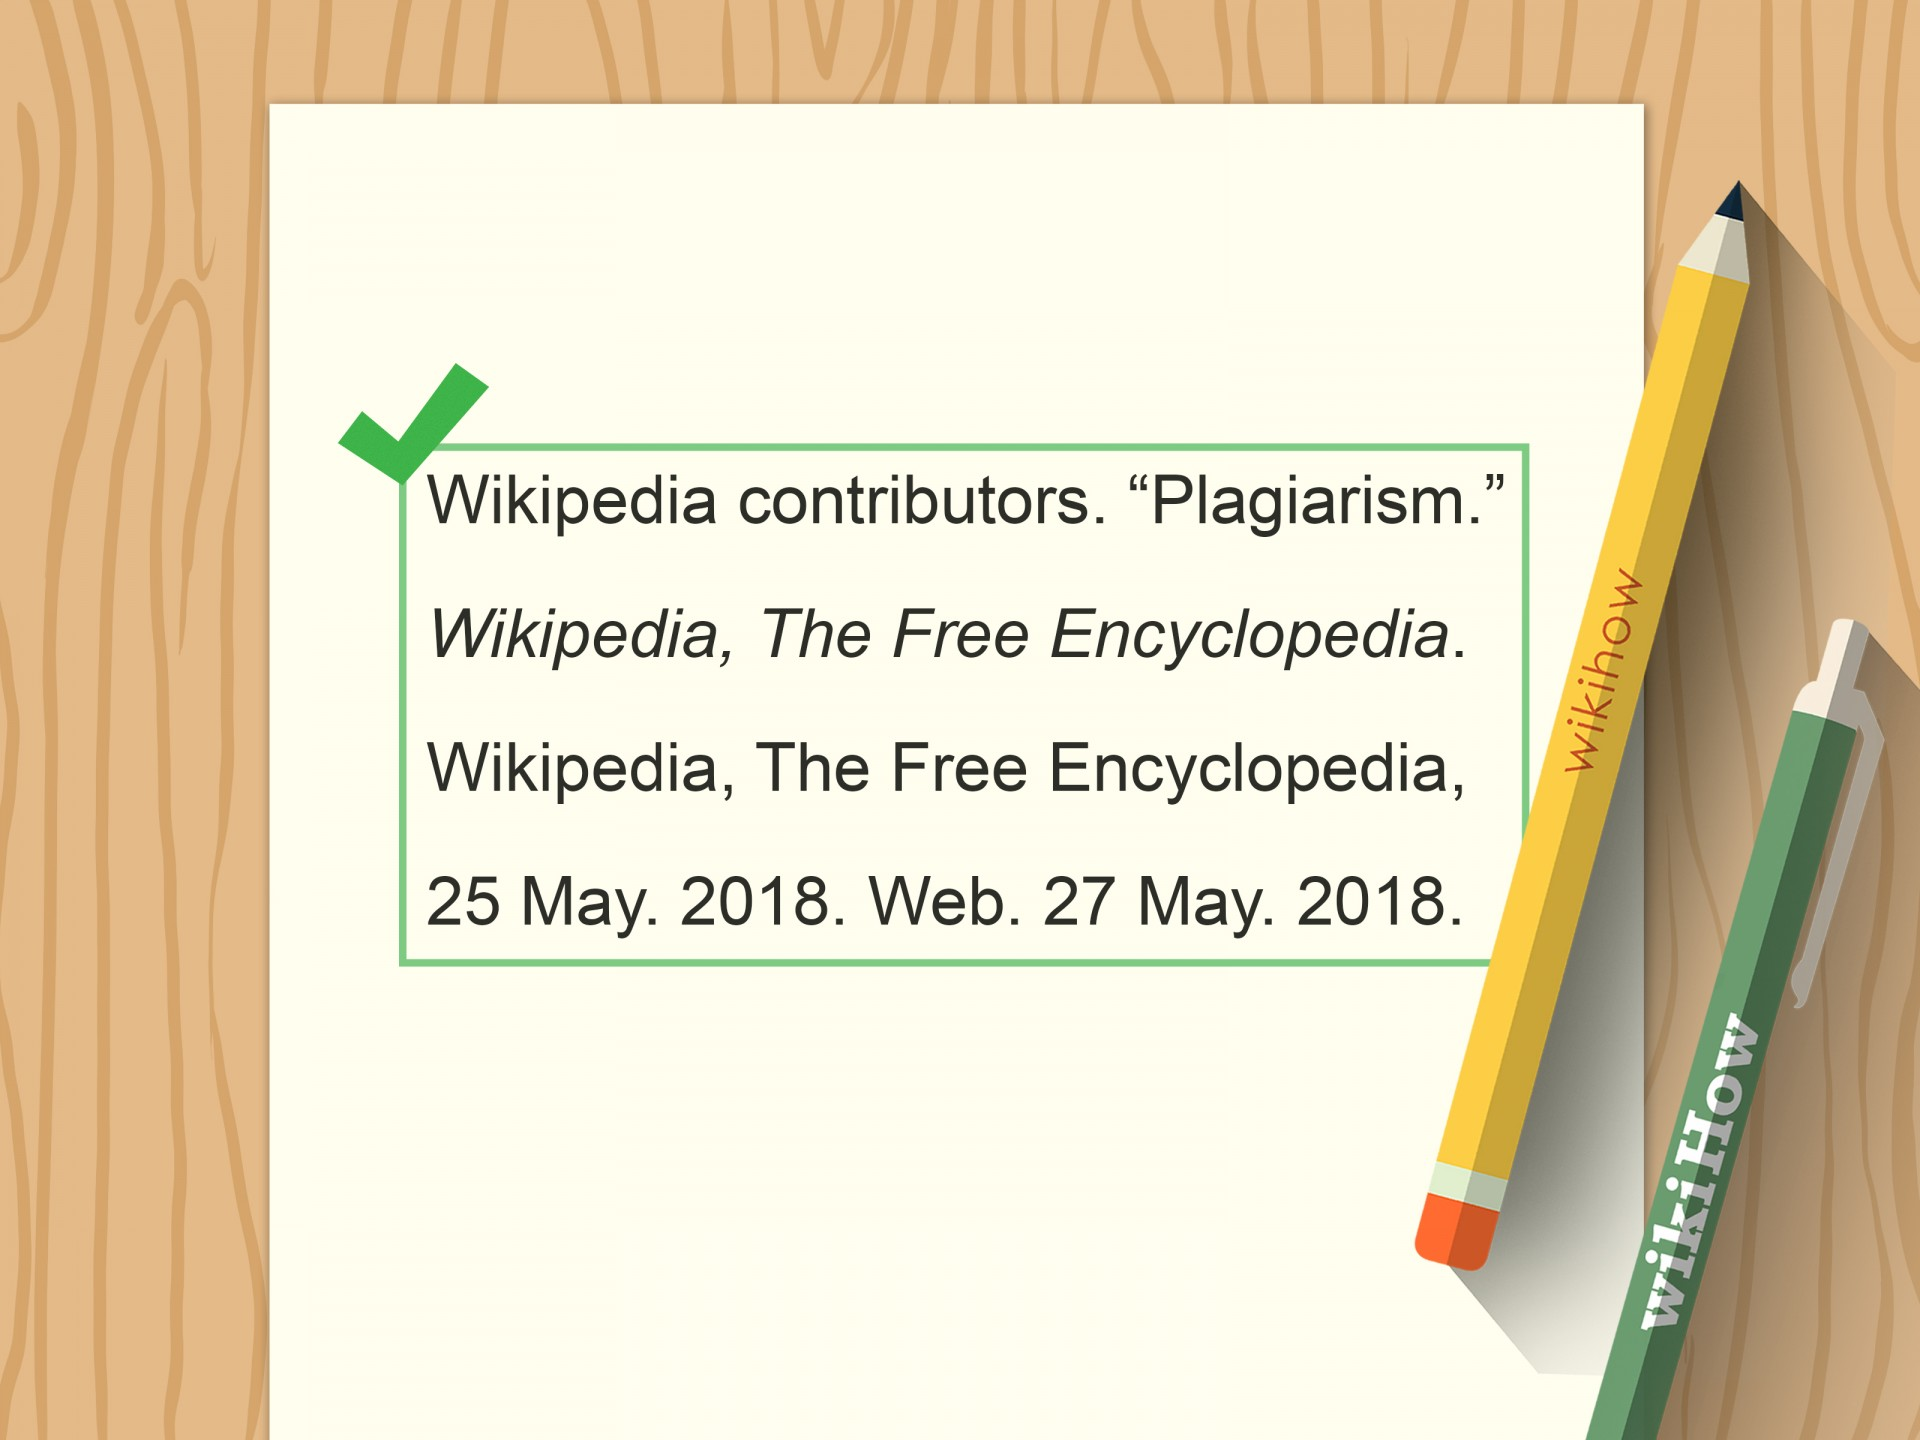 026 Mla Research Paper Citation Format Cite Wikipedia Article In Step Imposing Text Citing A 1920